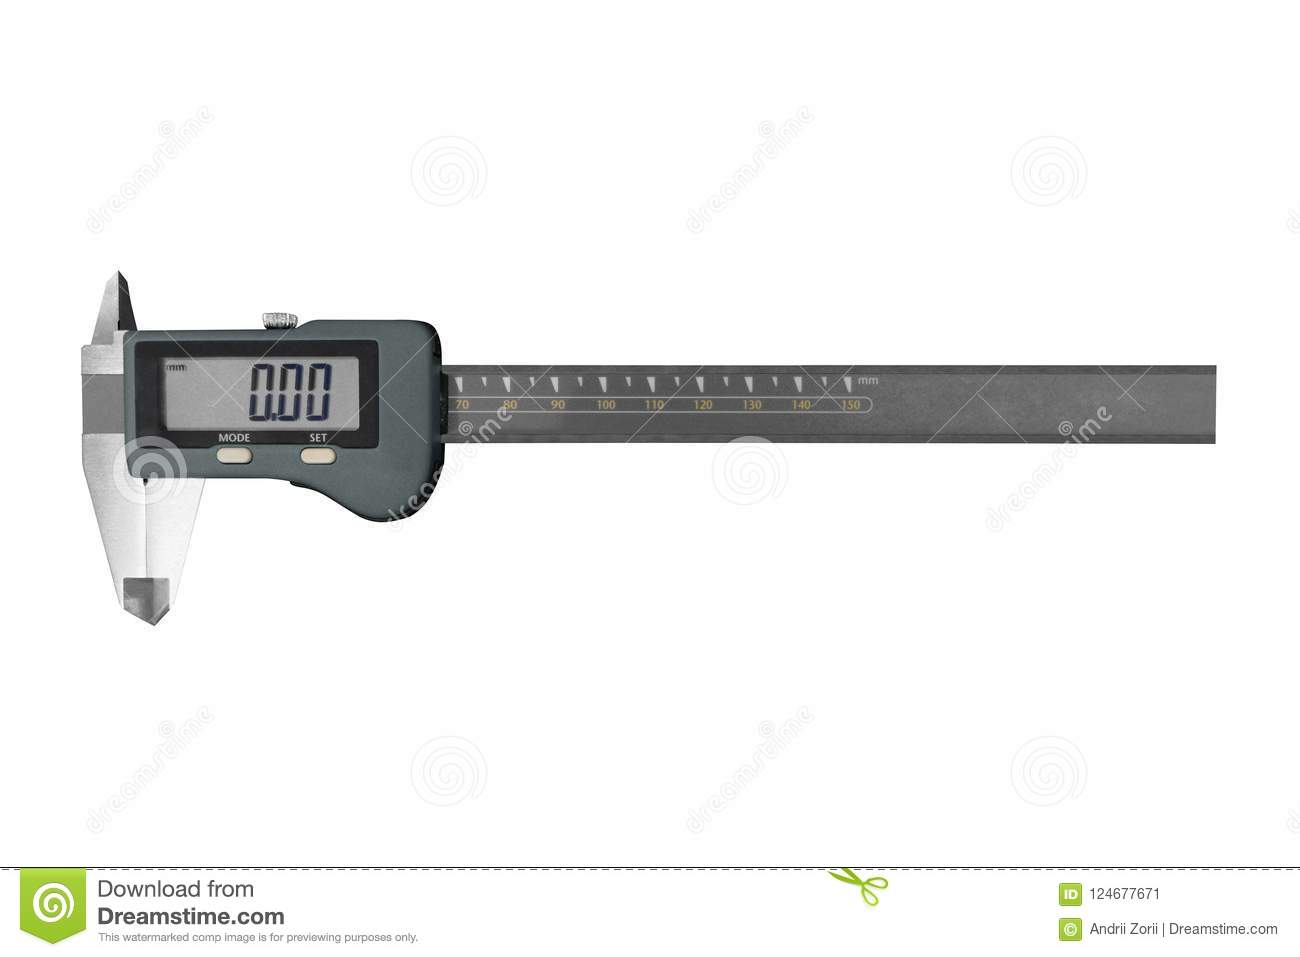 Digital electronic vernier caliper, isolated on white background. Electronic digital caliper on white background